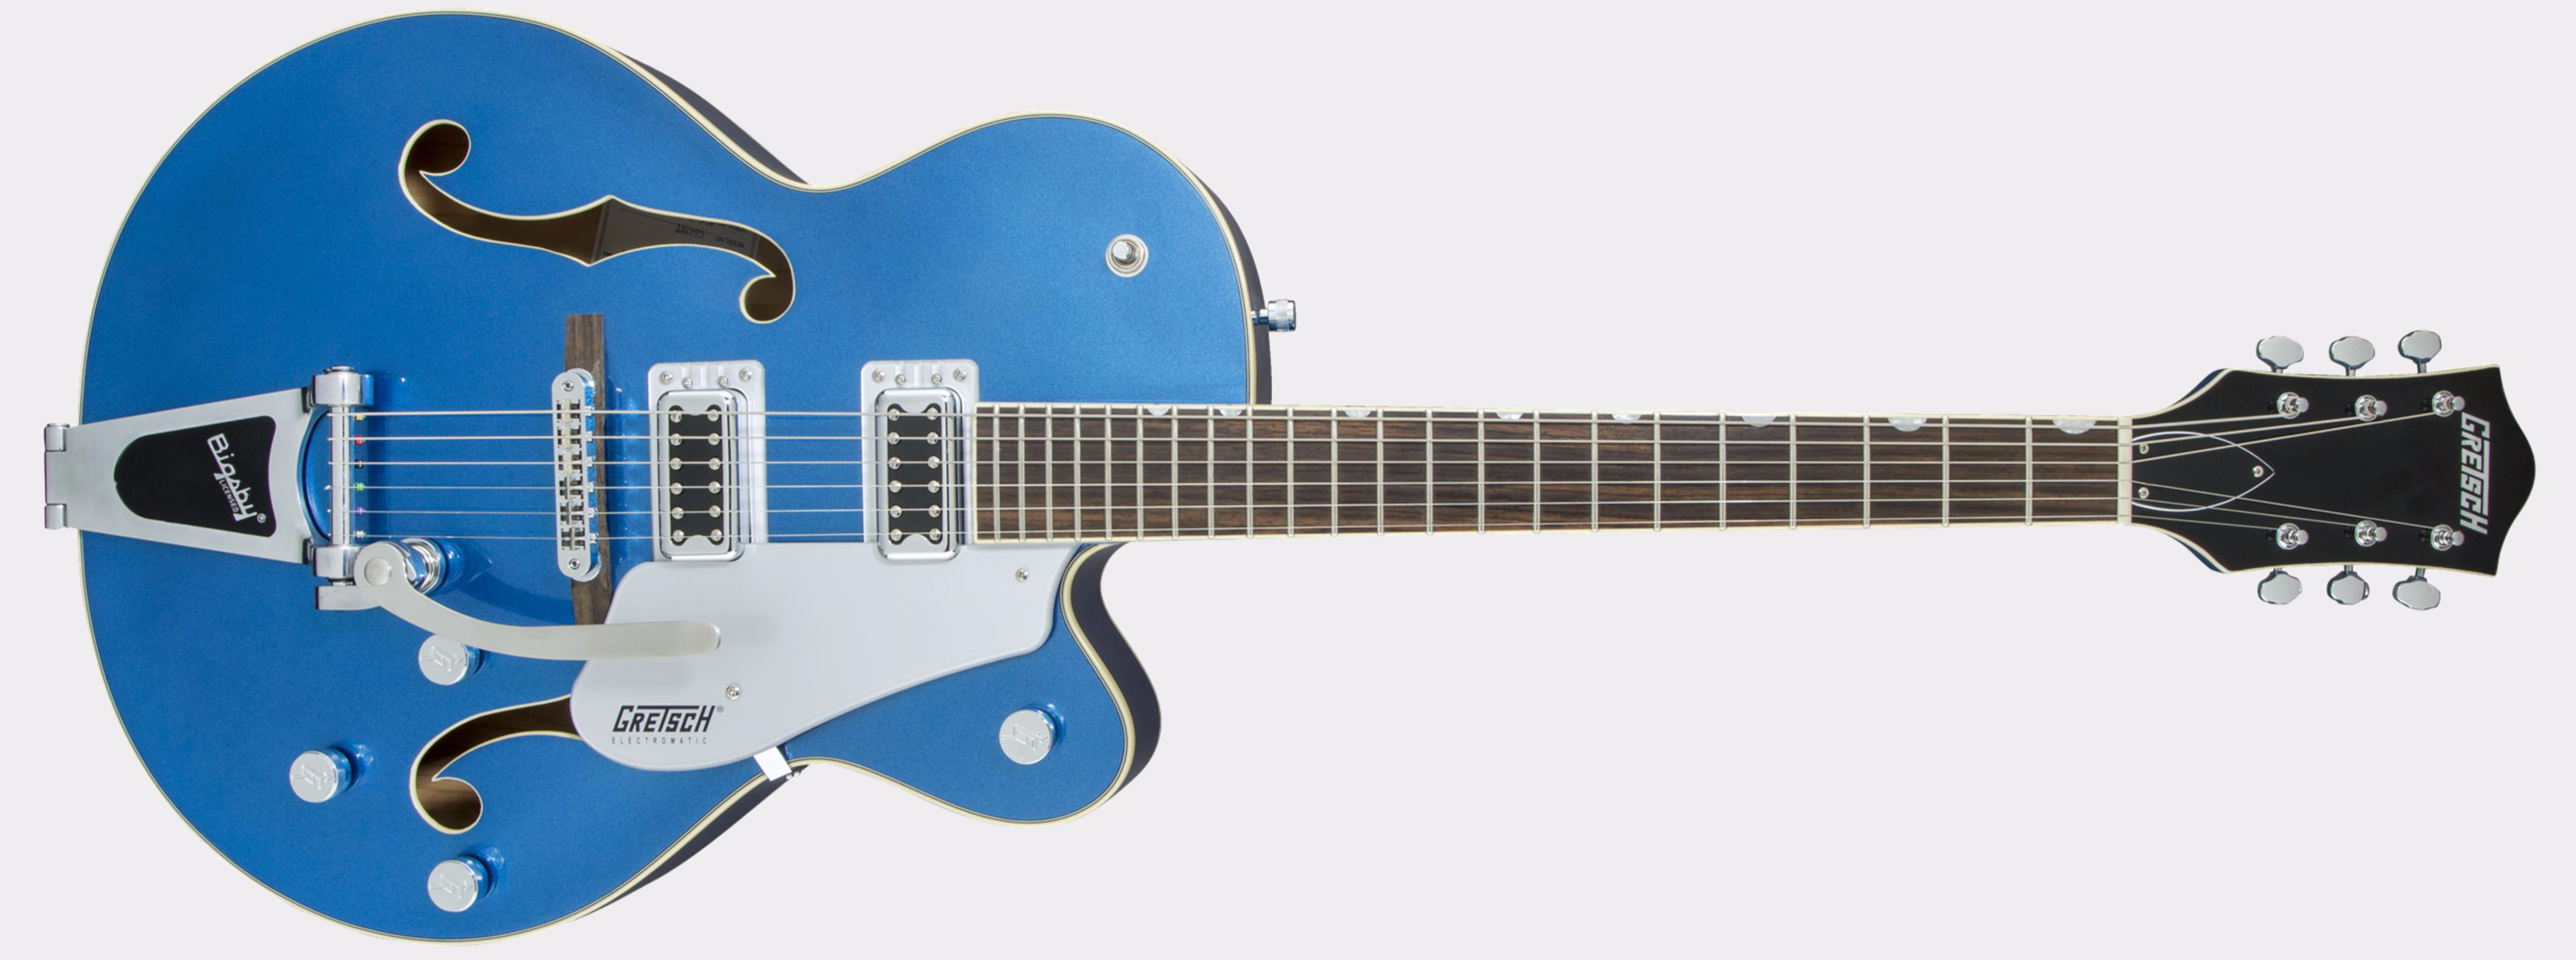 Gretsch G5420T Electromatic Fairlane Blue Front